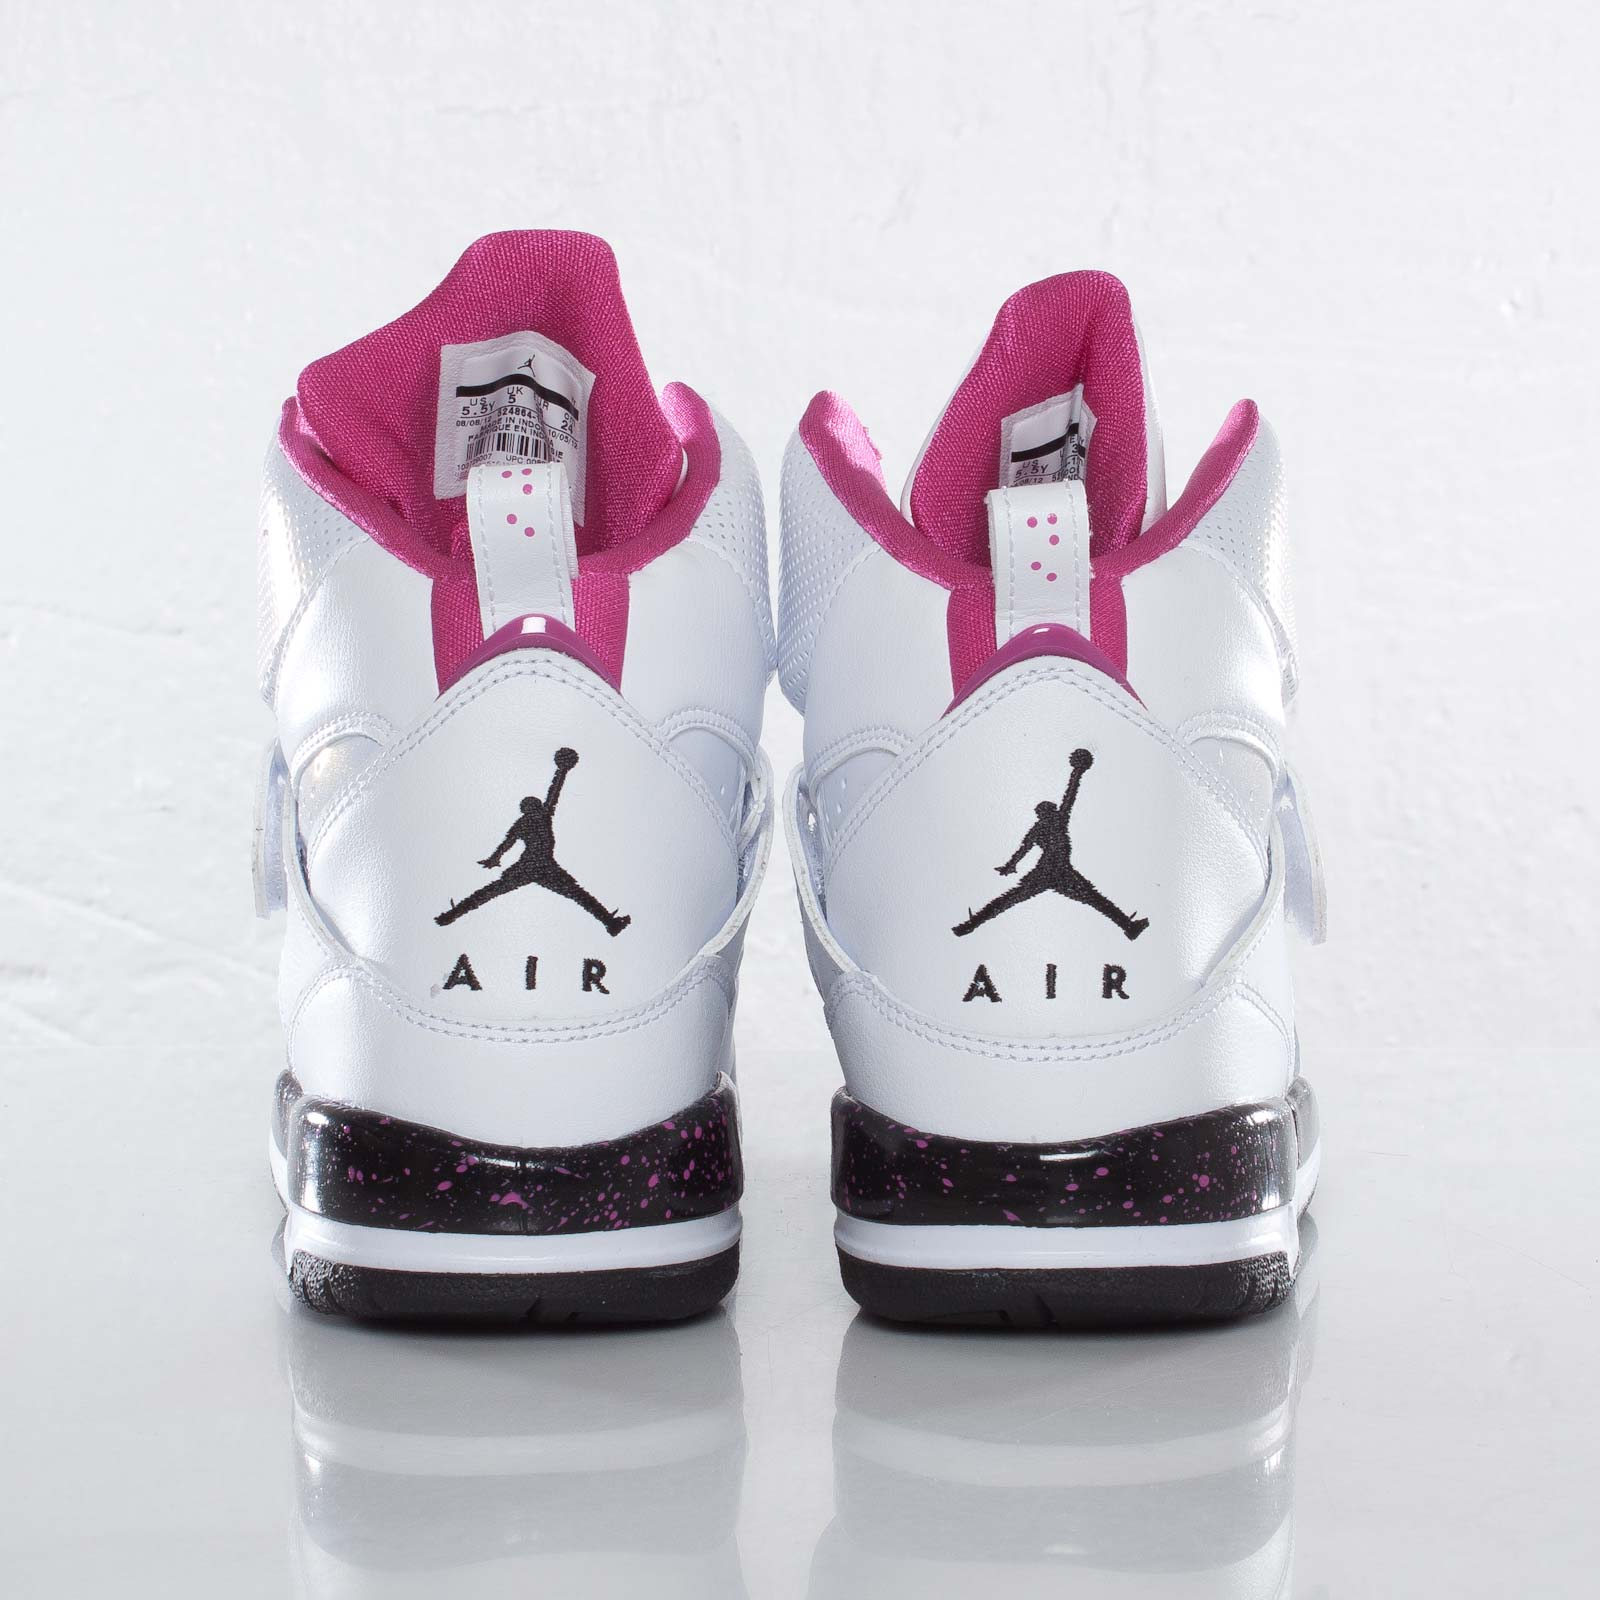 new arrivals 5a5b3 e63fb Jordan Brand Girls Jordan Flight 45 High GS - 524864-128 - Sneakersnstuff    sneakers   streetwear online since 1999